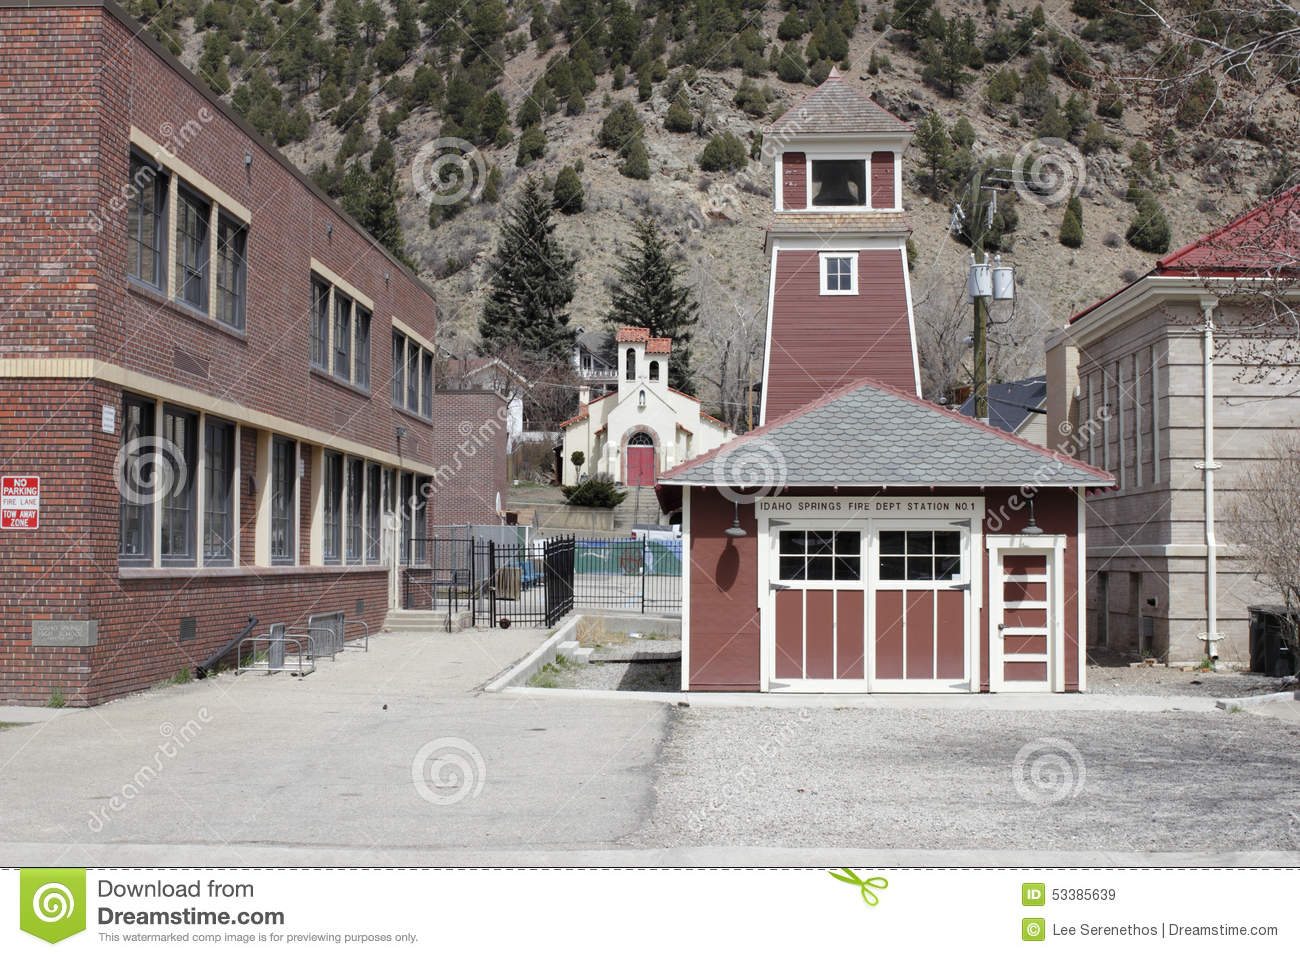 Idaho Springs Fire Department Station 1 Editorial Stock